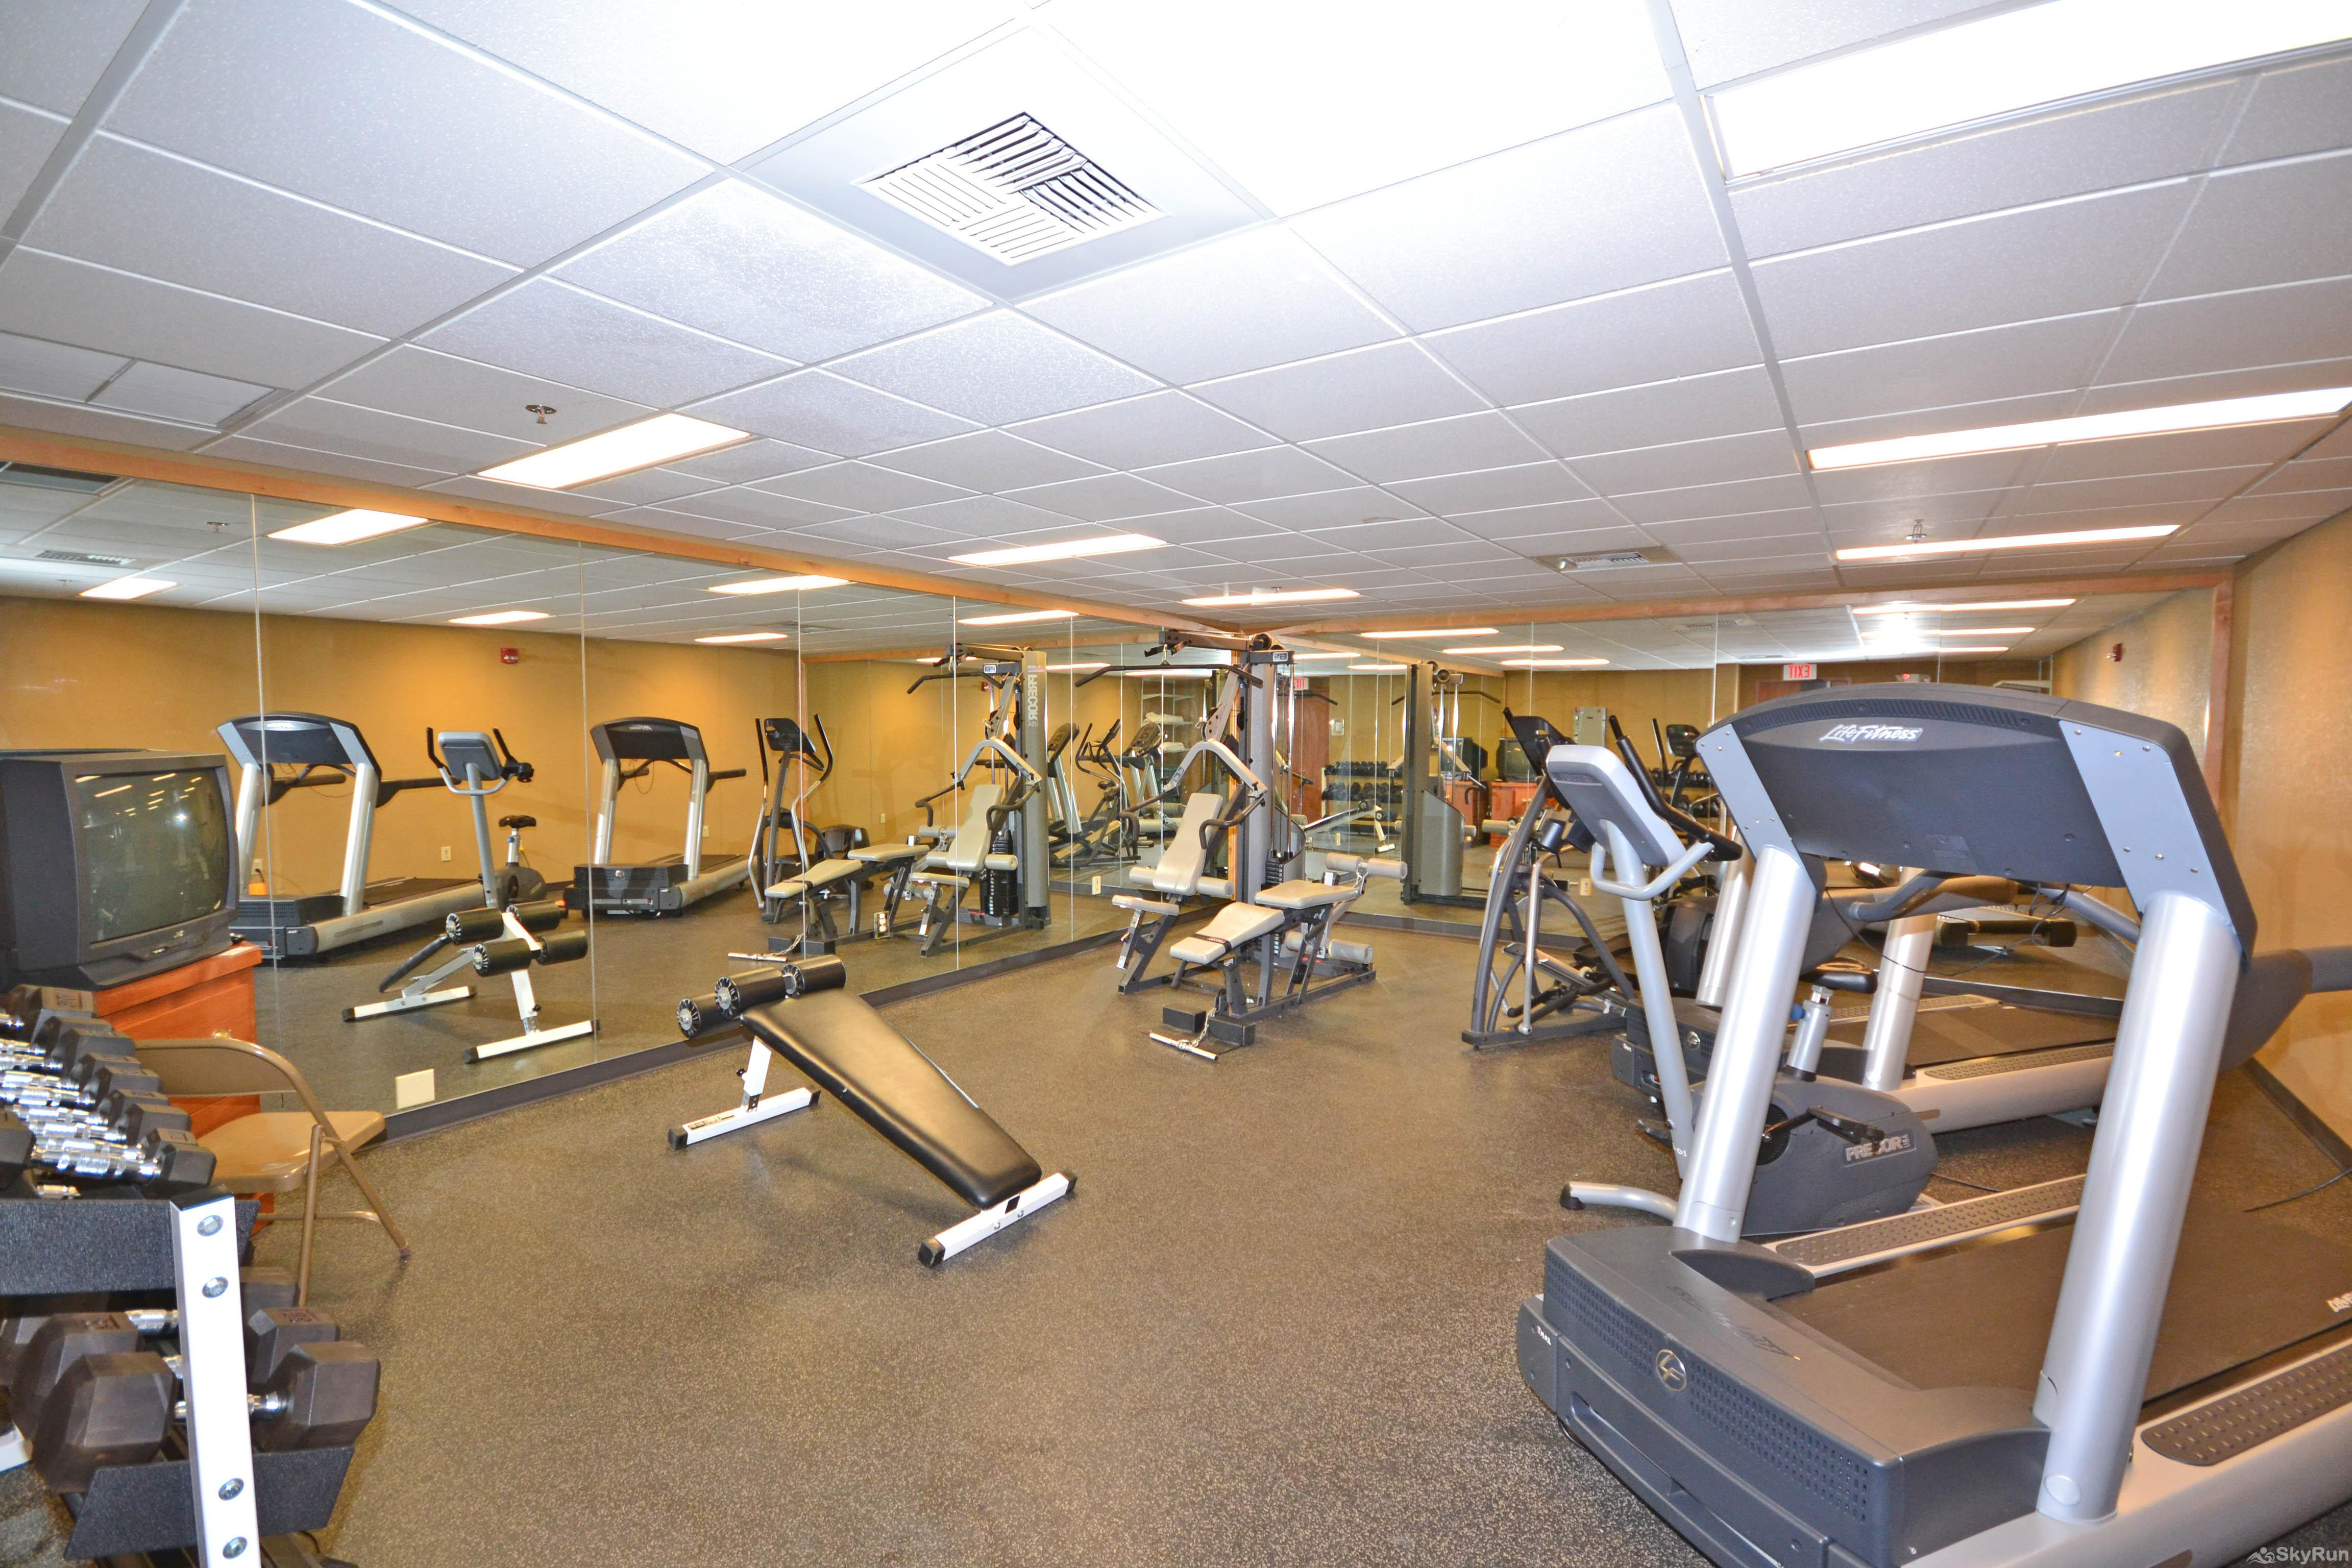 Morning Eagle 411 Use of Gym Space is Provided